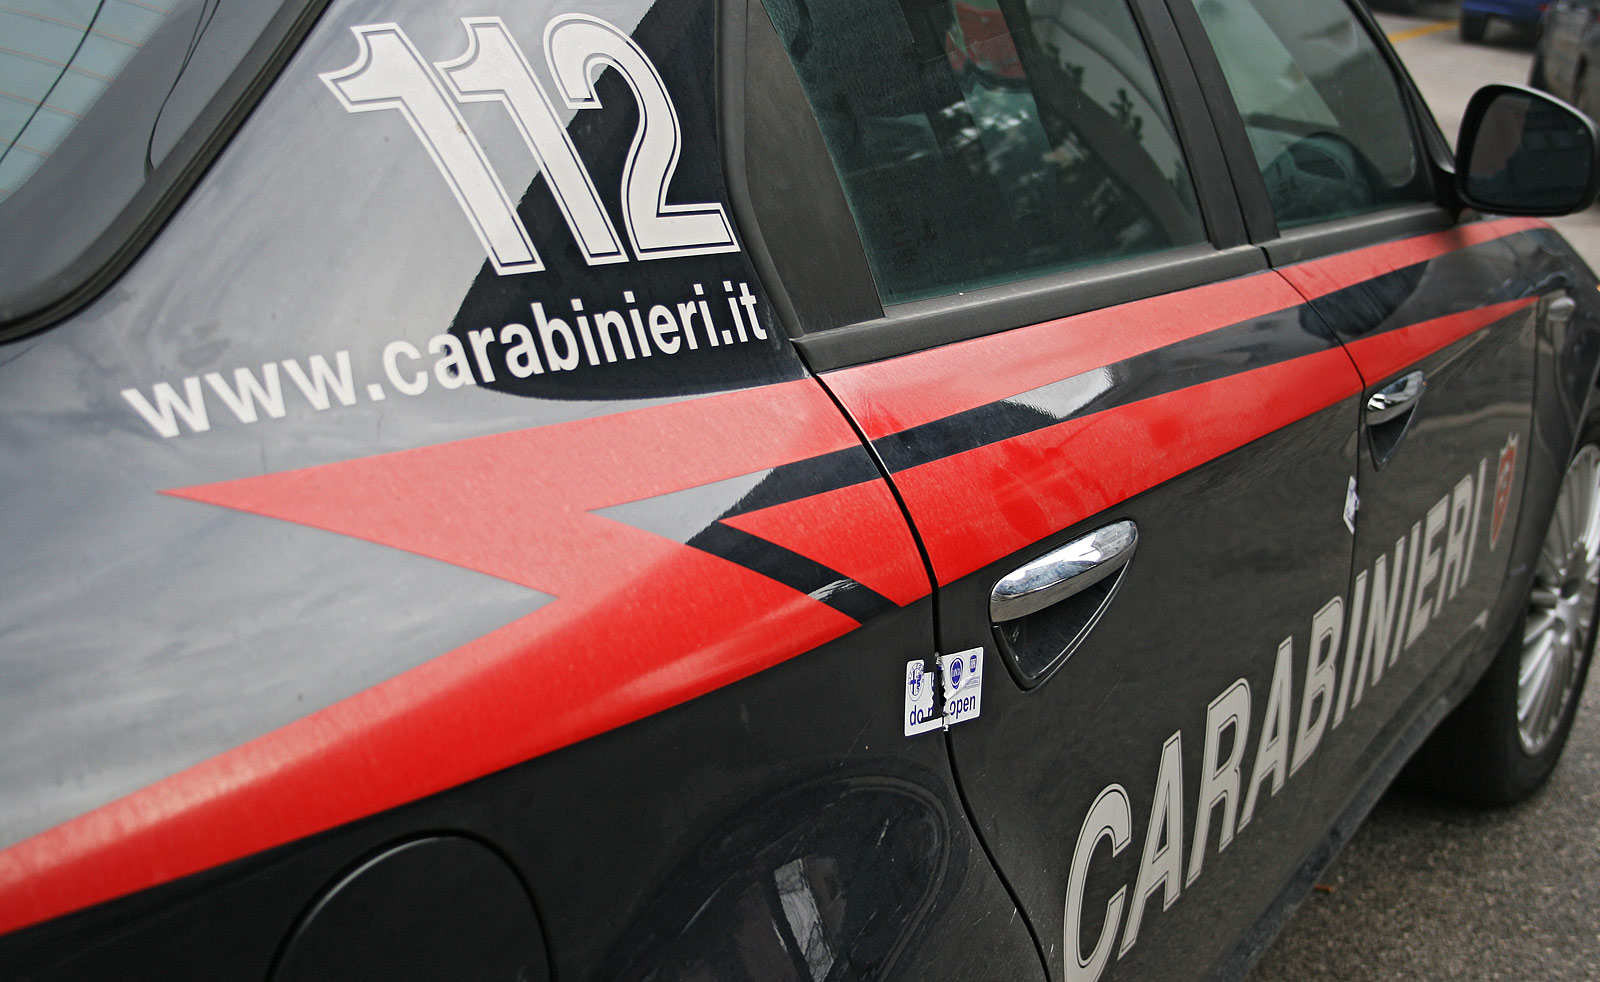 Ladisa wins green public procurement tender for carabinieri forces